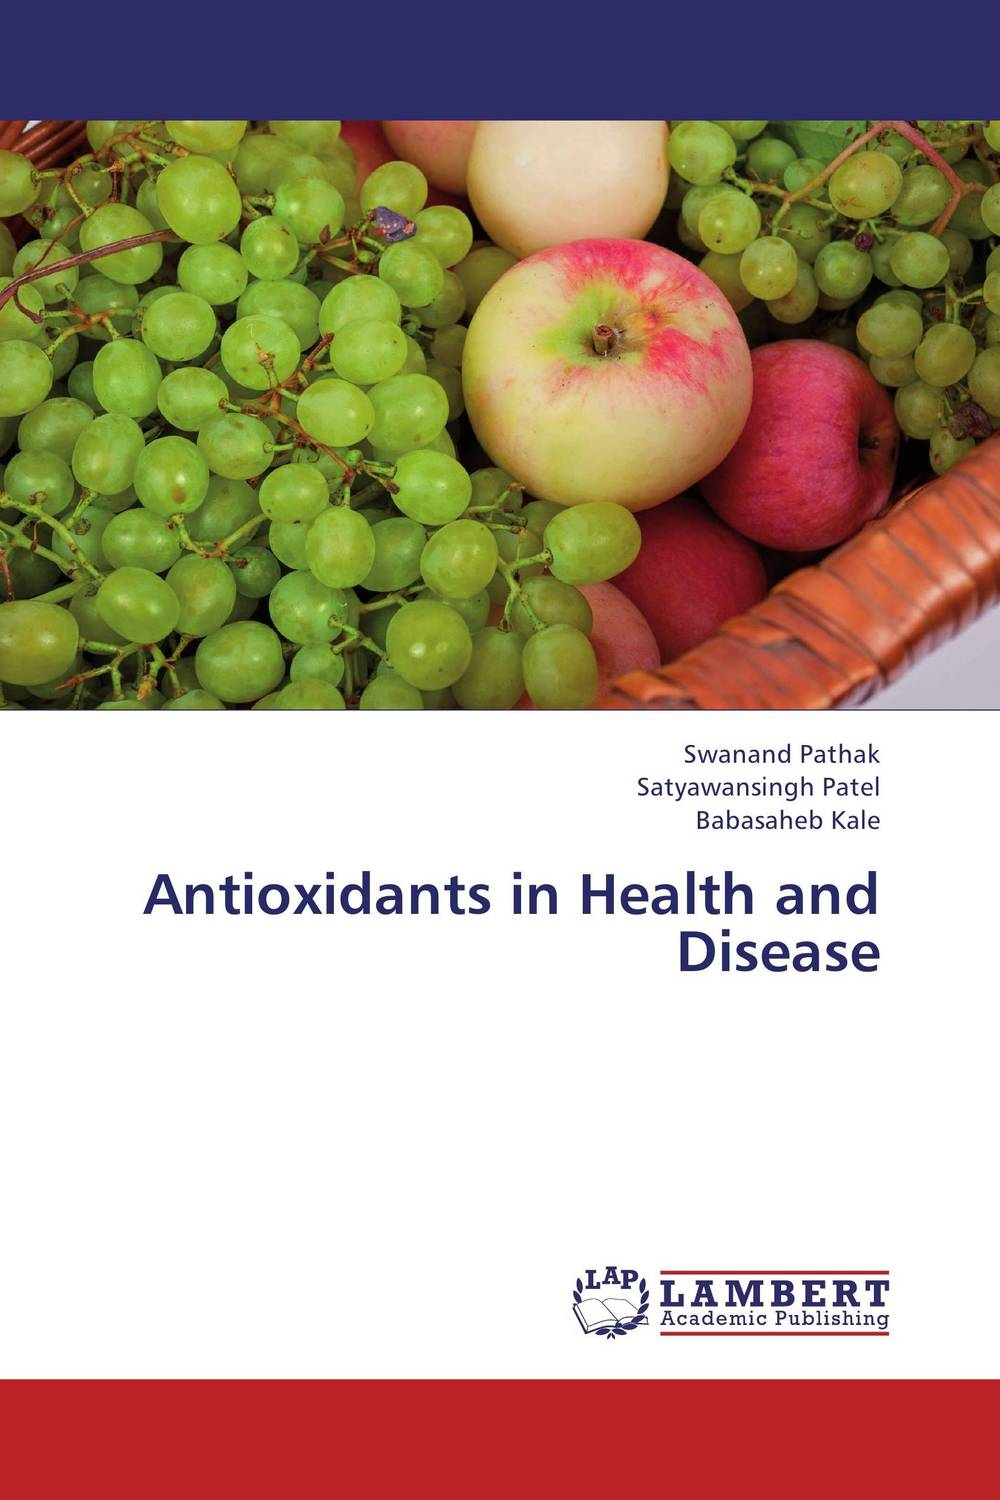 Antioxidants in Health and Disease oxidative stability of meat products and the role of antioxidants